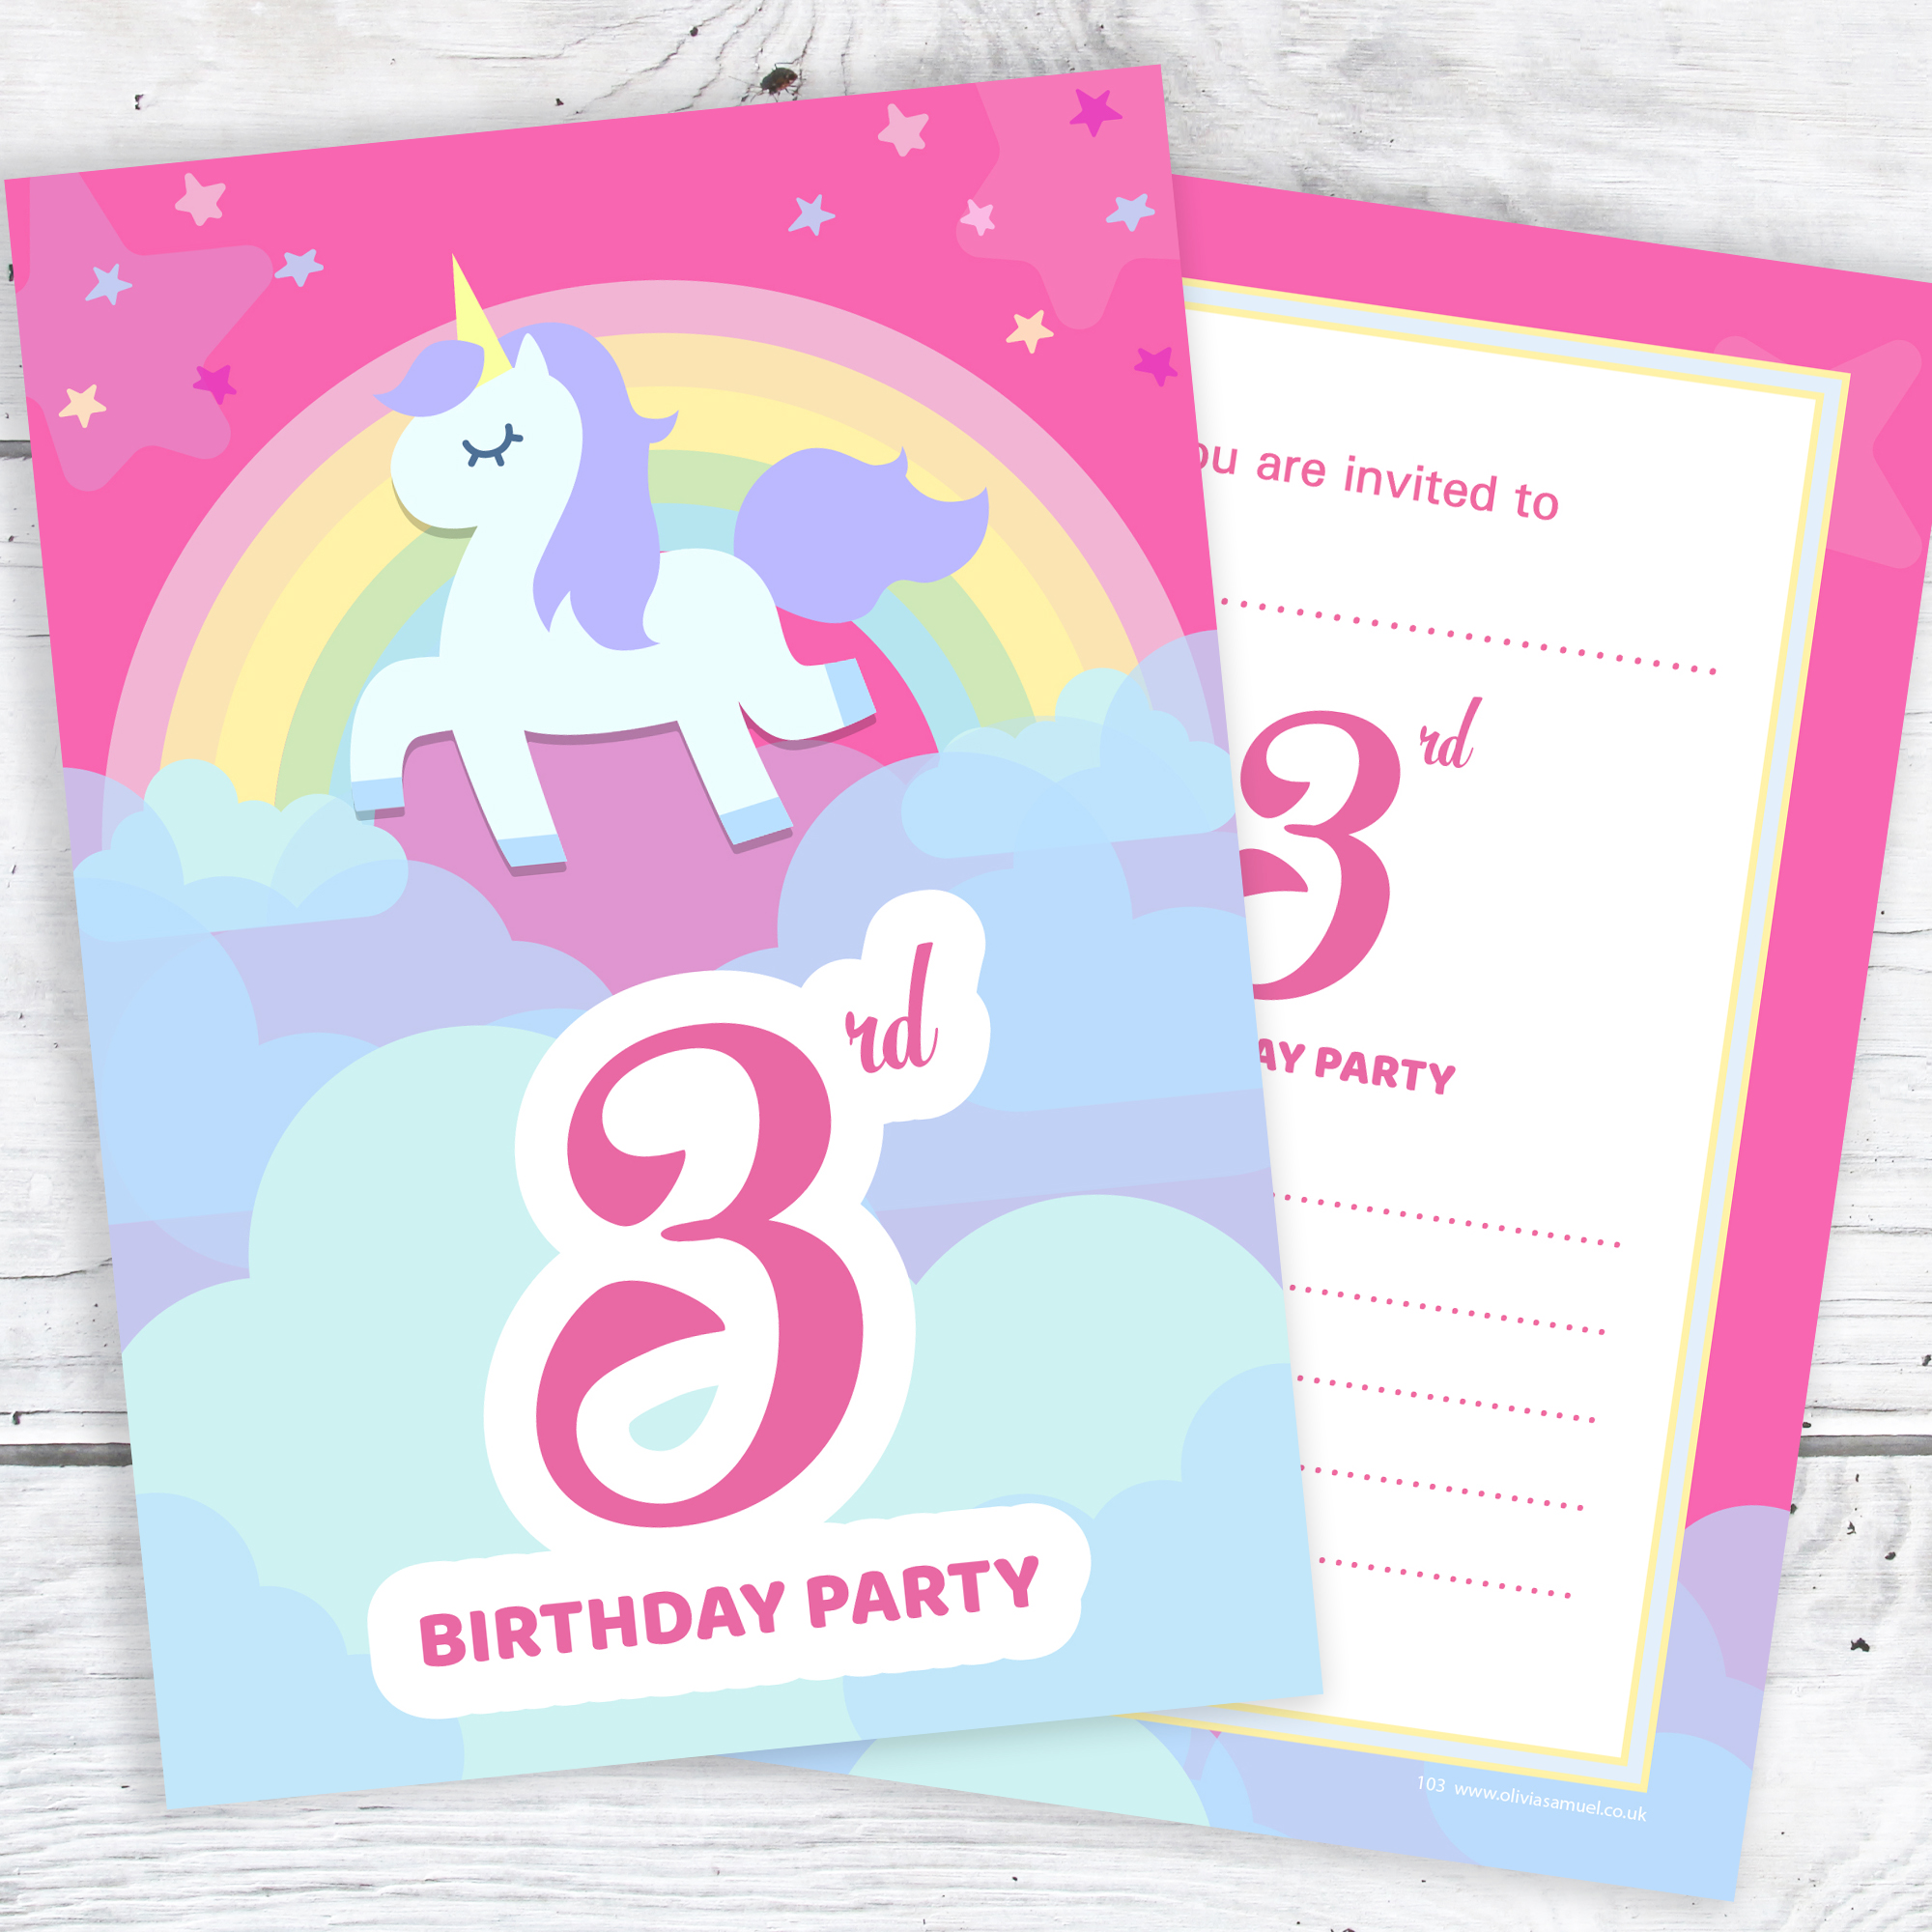 3rd Birthday Party Invitations – Unicorn & Rainbow Pink Invites ...